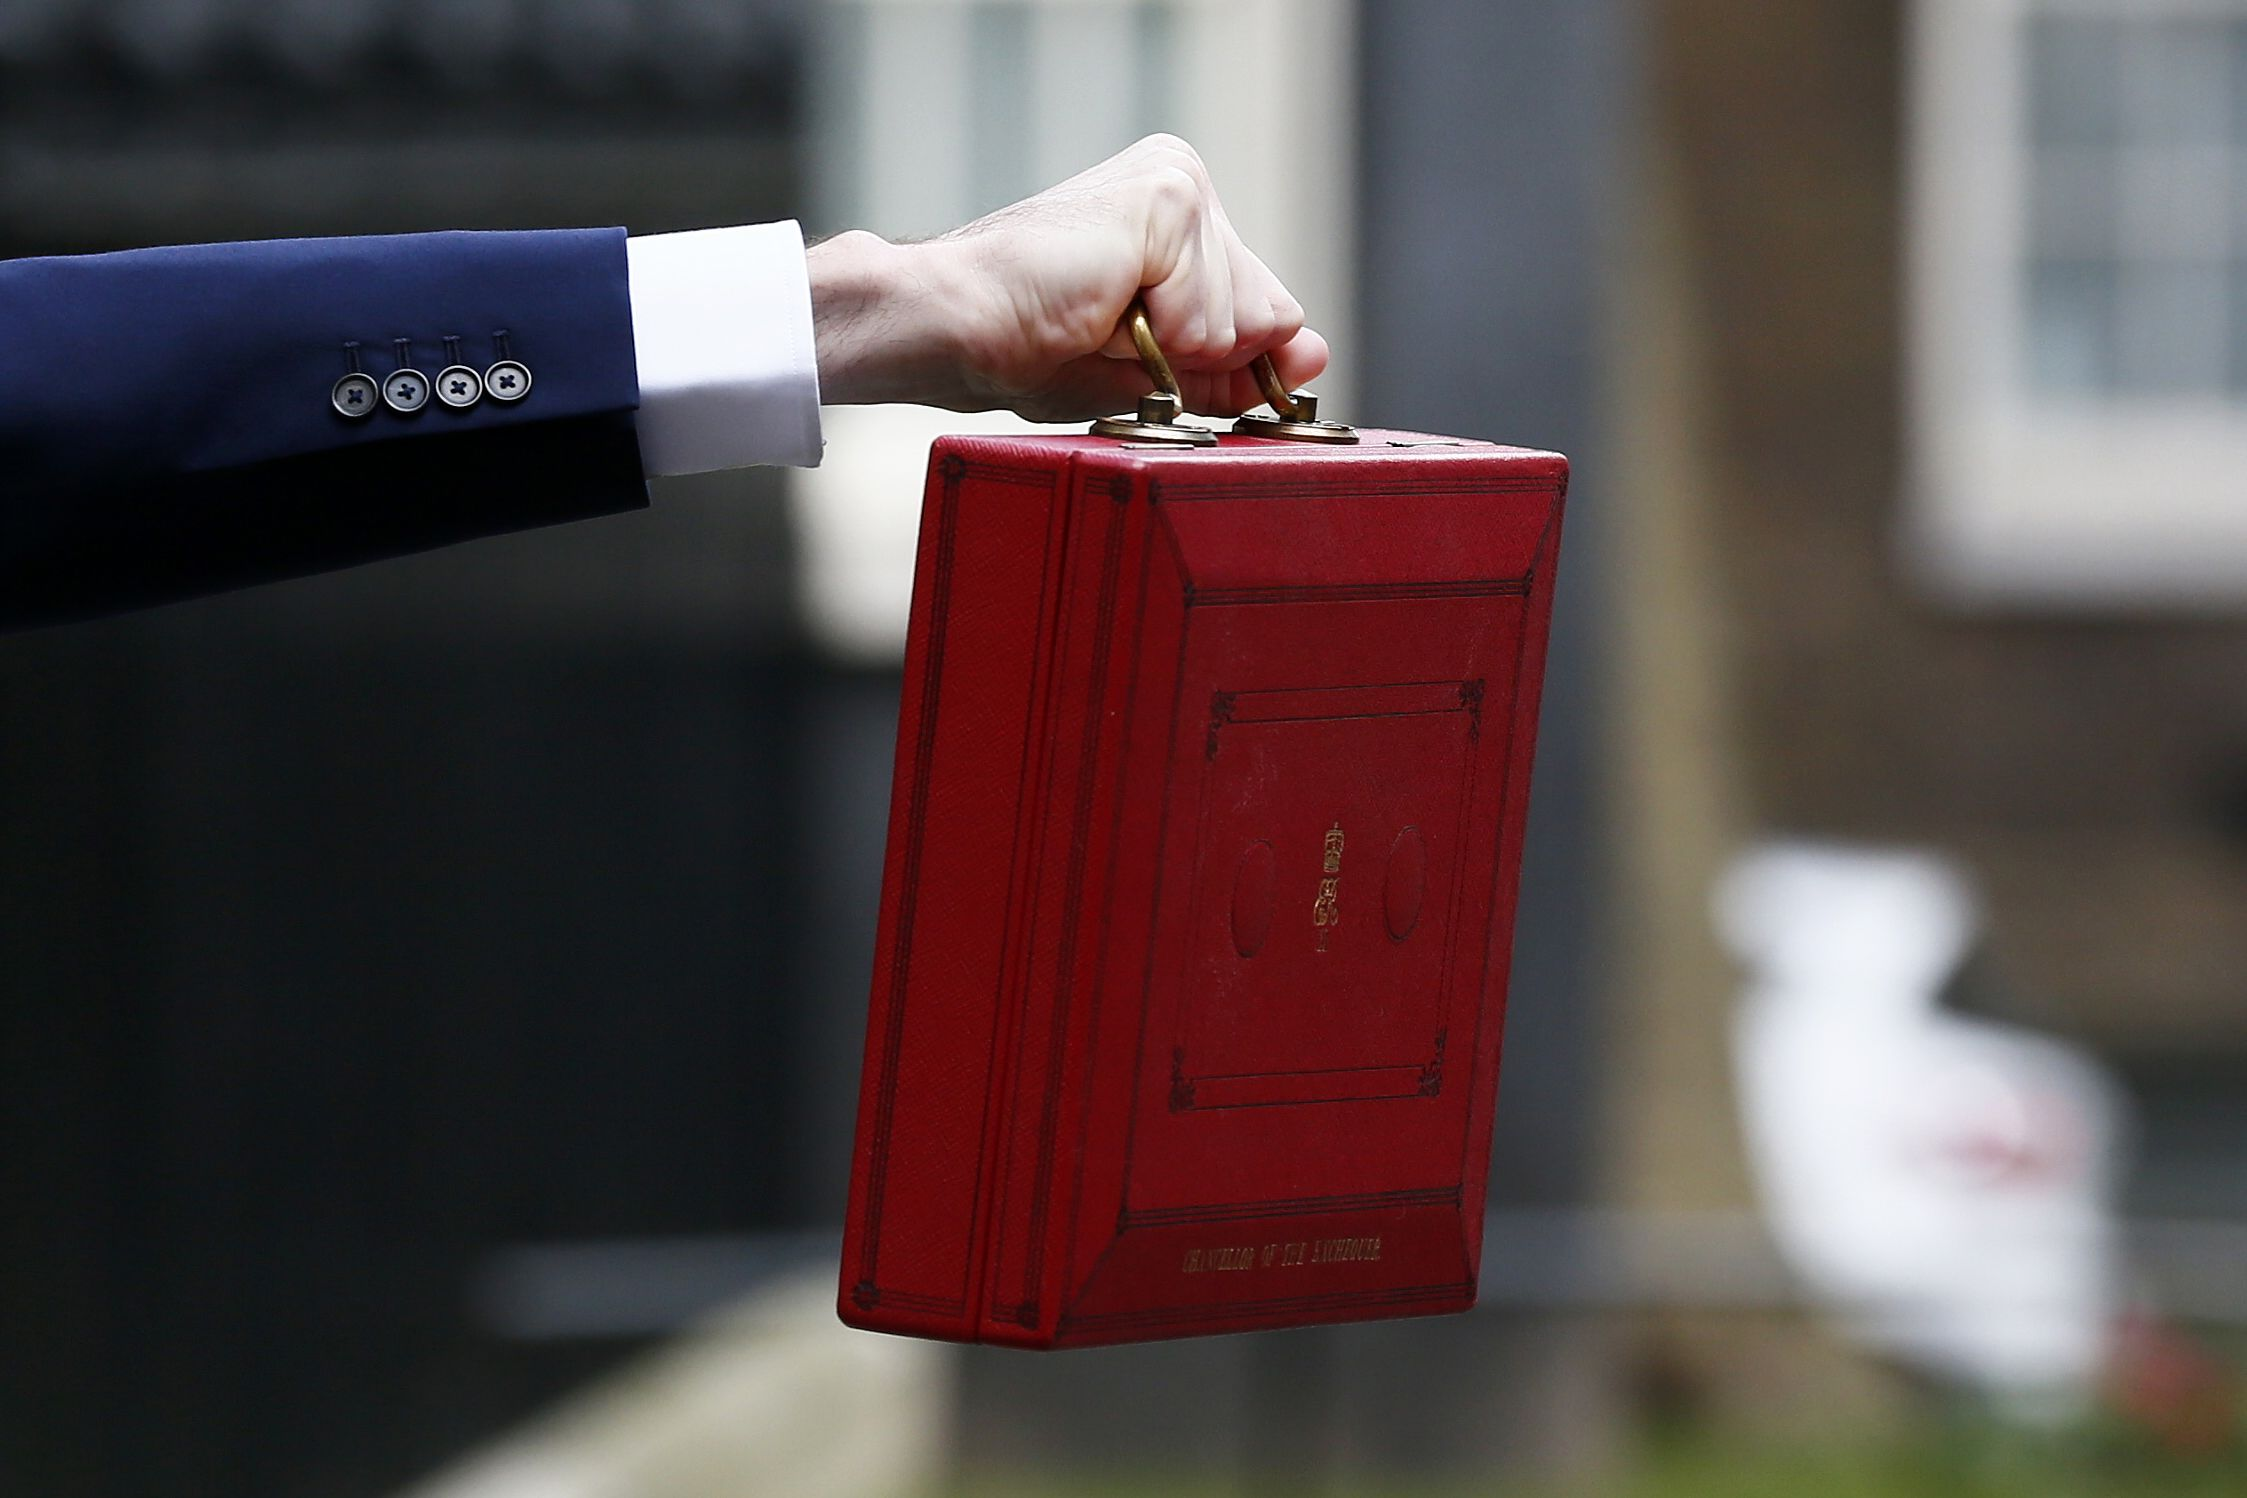 16/03/2016_Budget Red Box